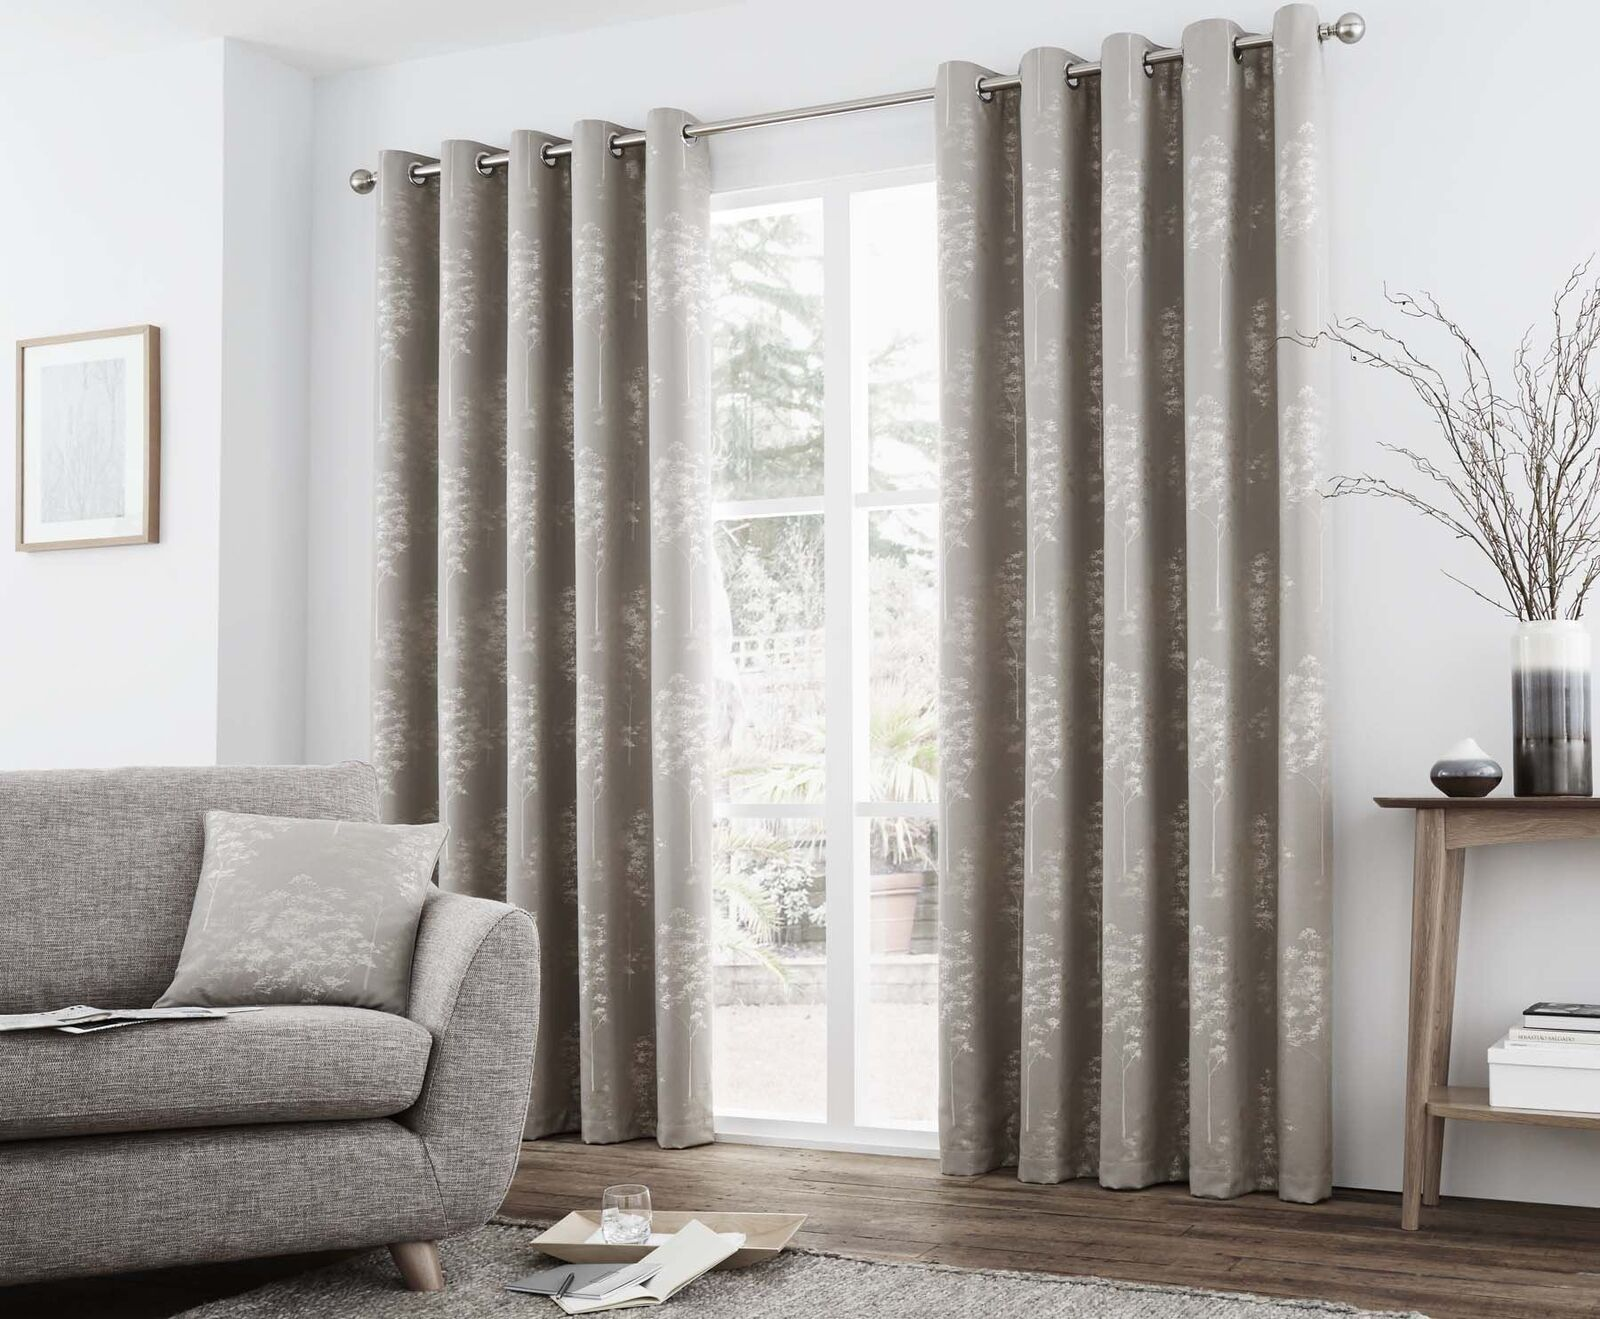 JACQUARD TREES STONE BEIGE HEAVYWEIGHT LINED RING TOP CURTAINS 7 7 7 GrößeS 5cf829